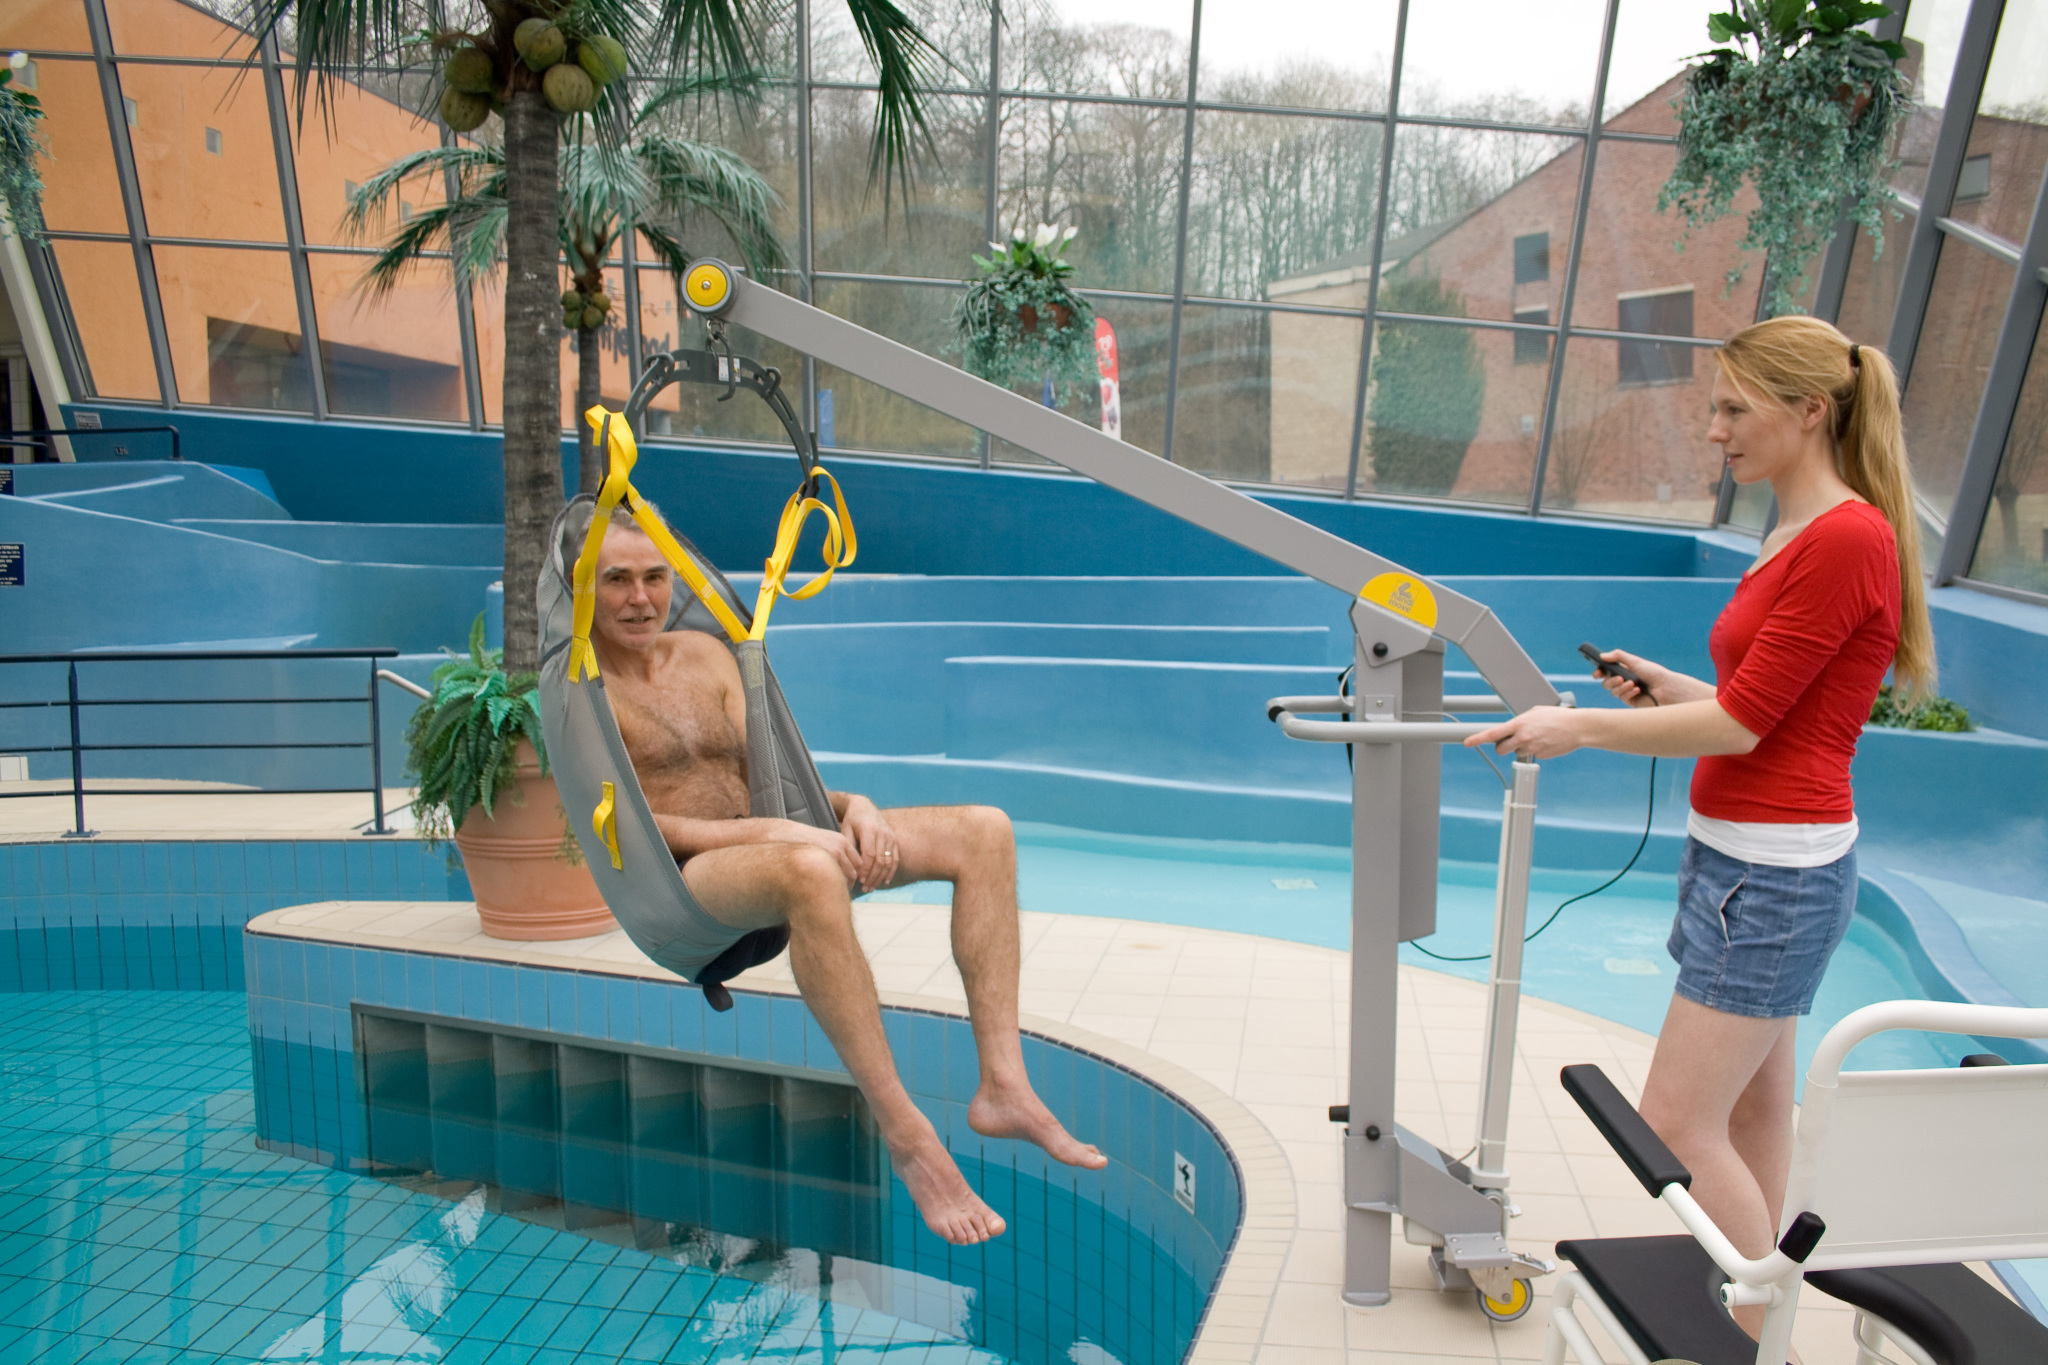 Handi-move pool lift